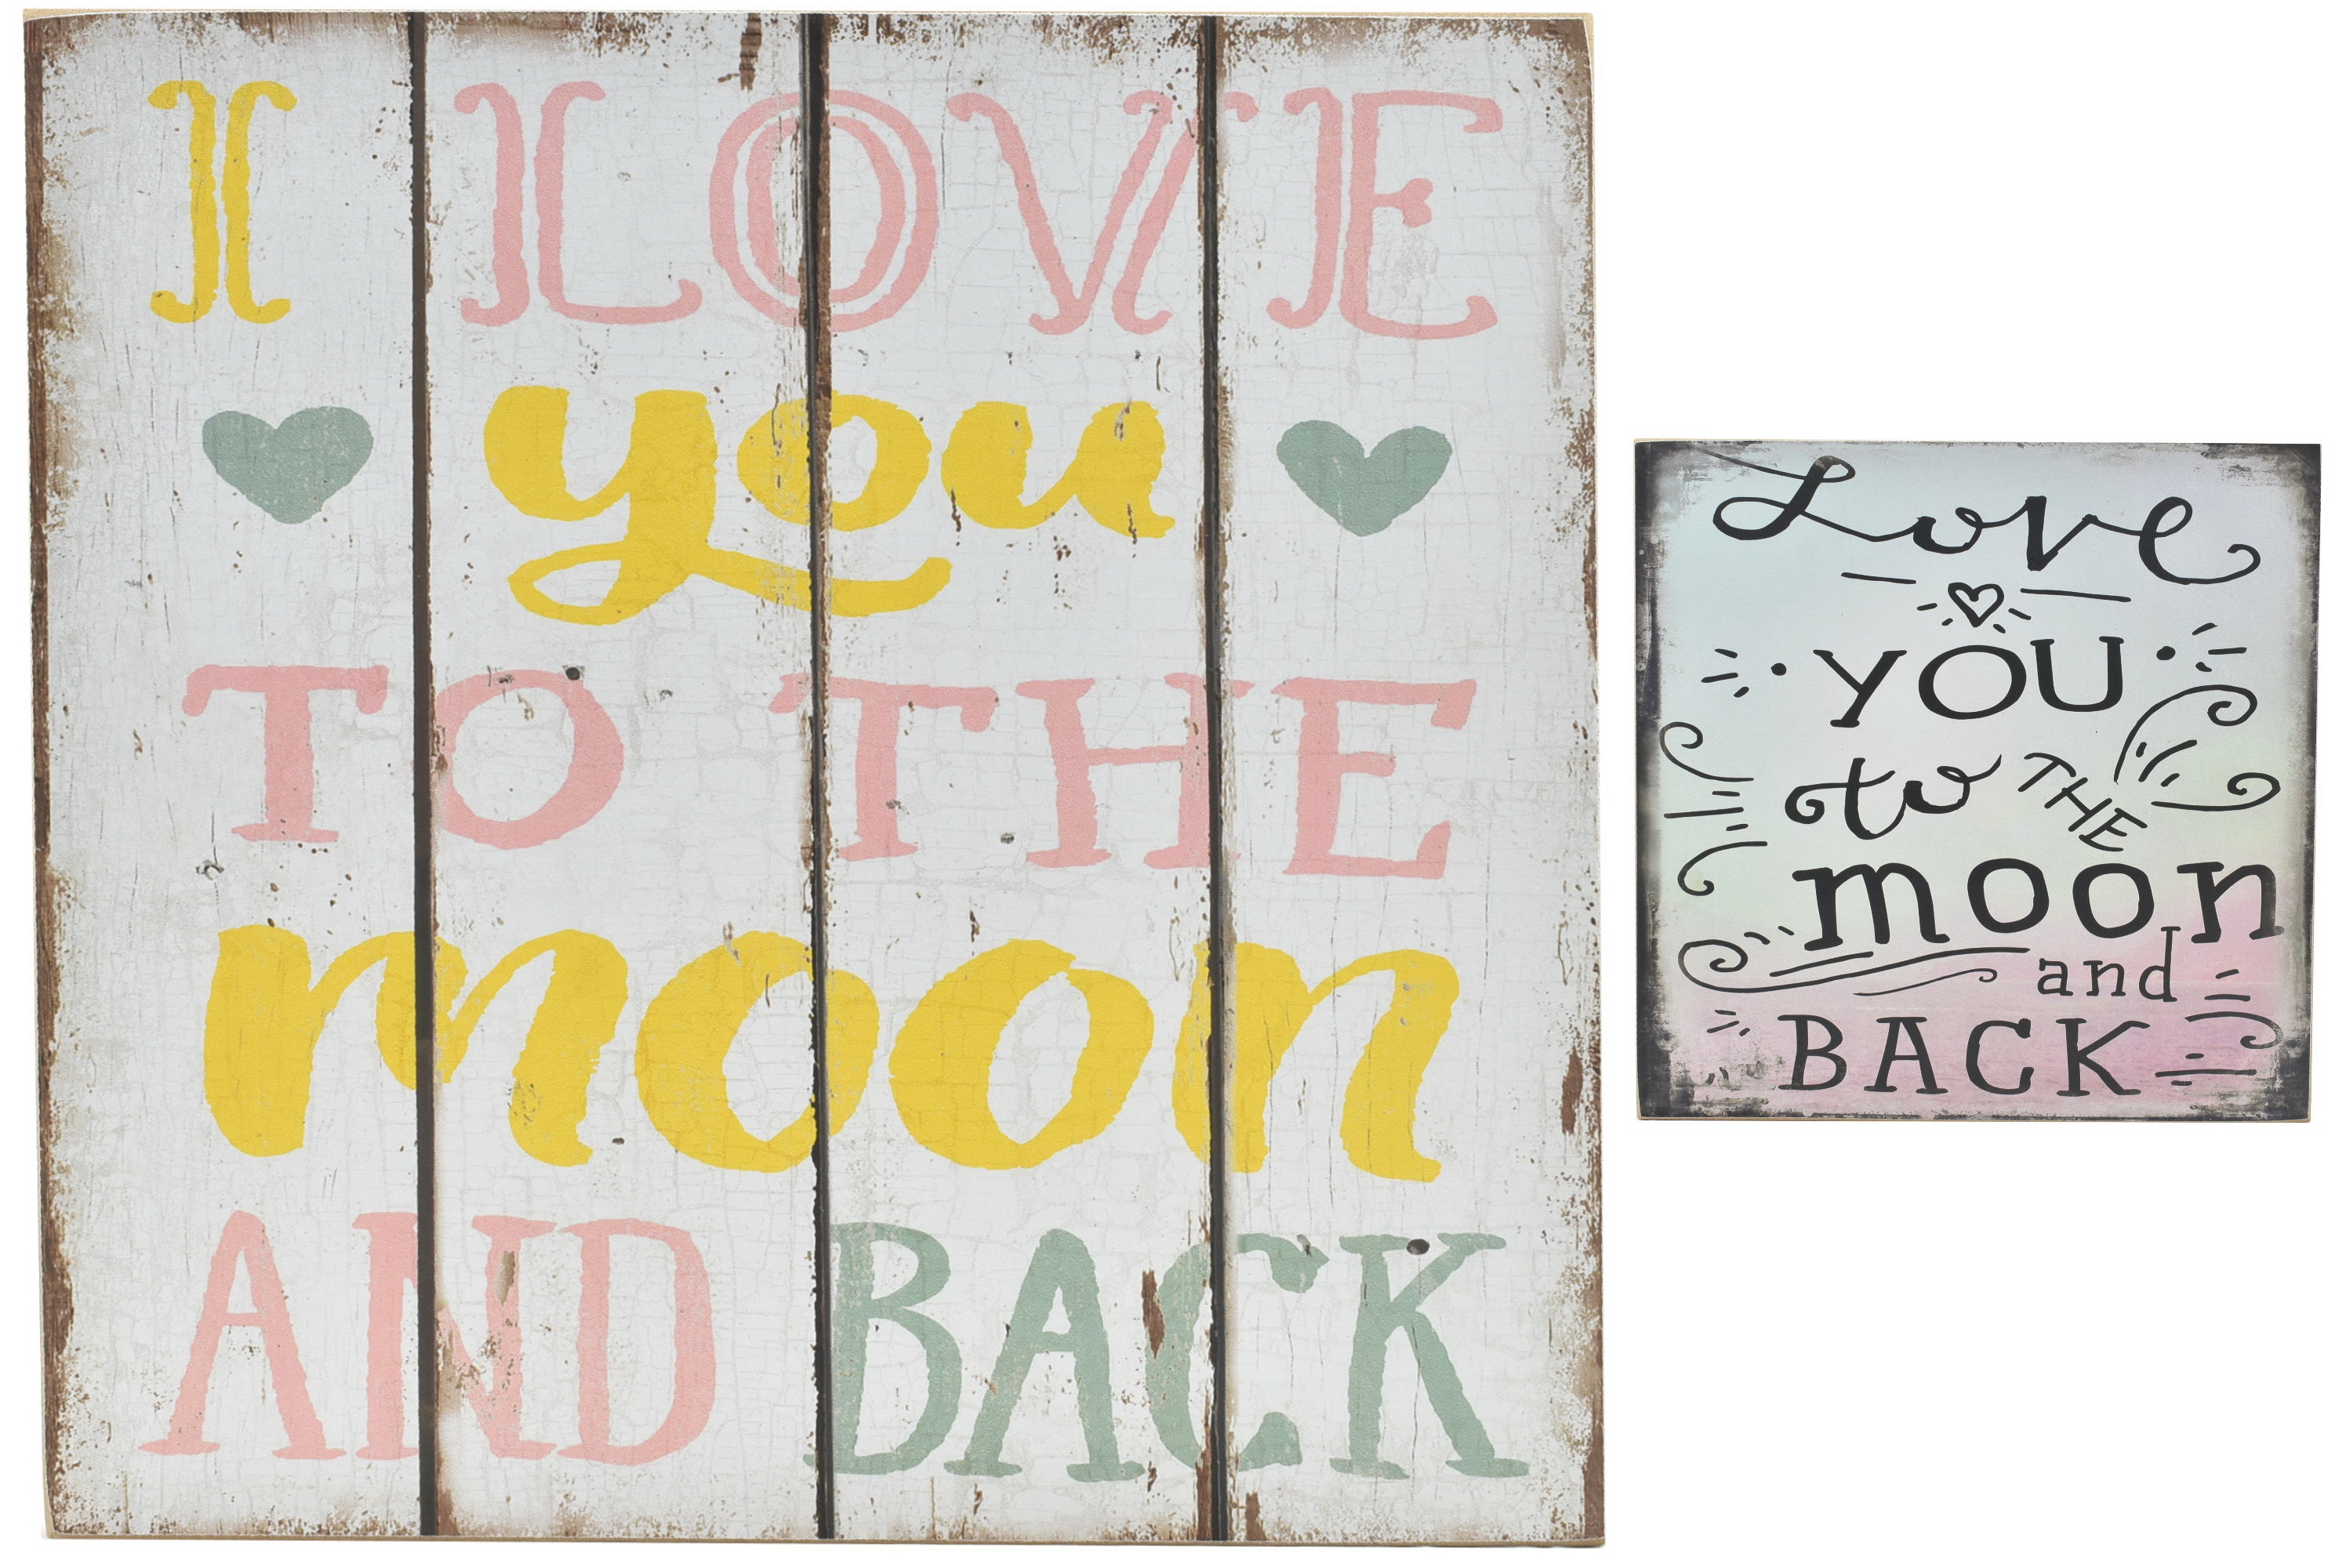 30 x 30cm Wood Sign Moon & Back 2 Assorted Designs